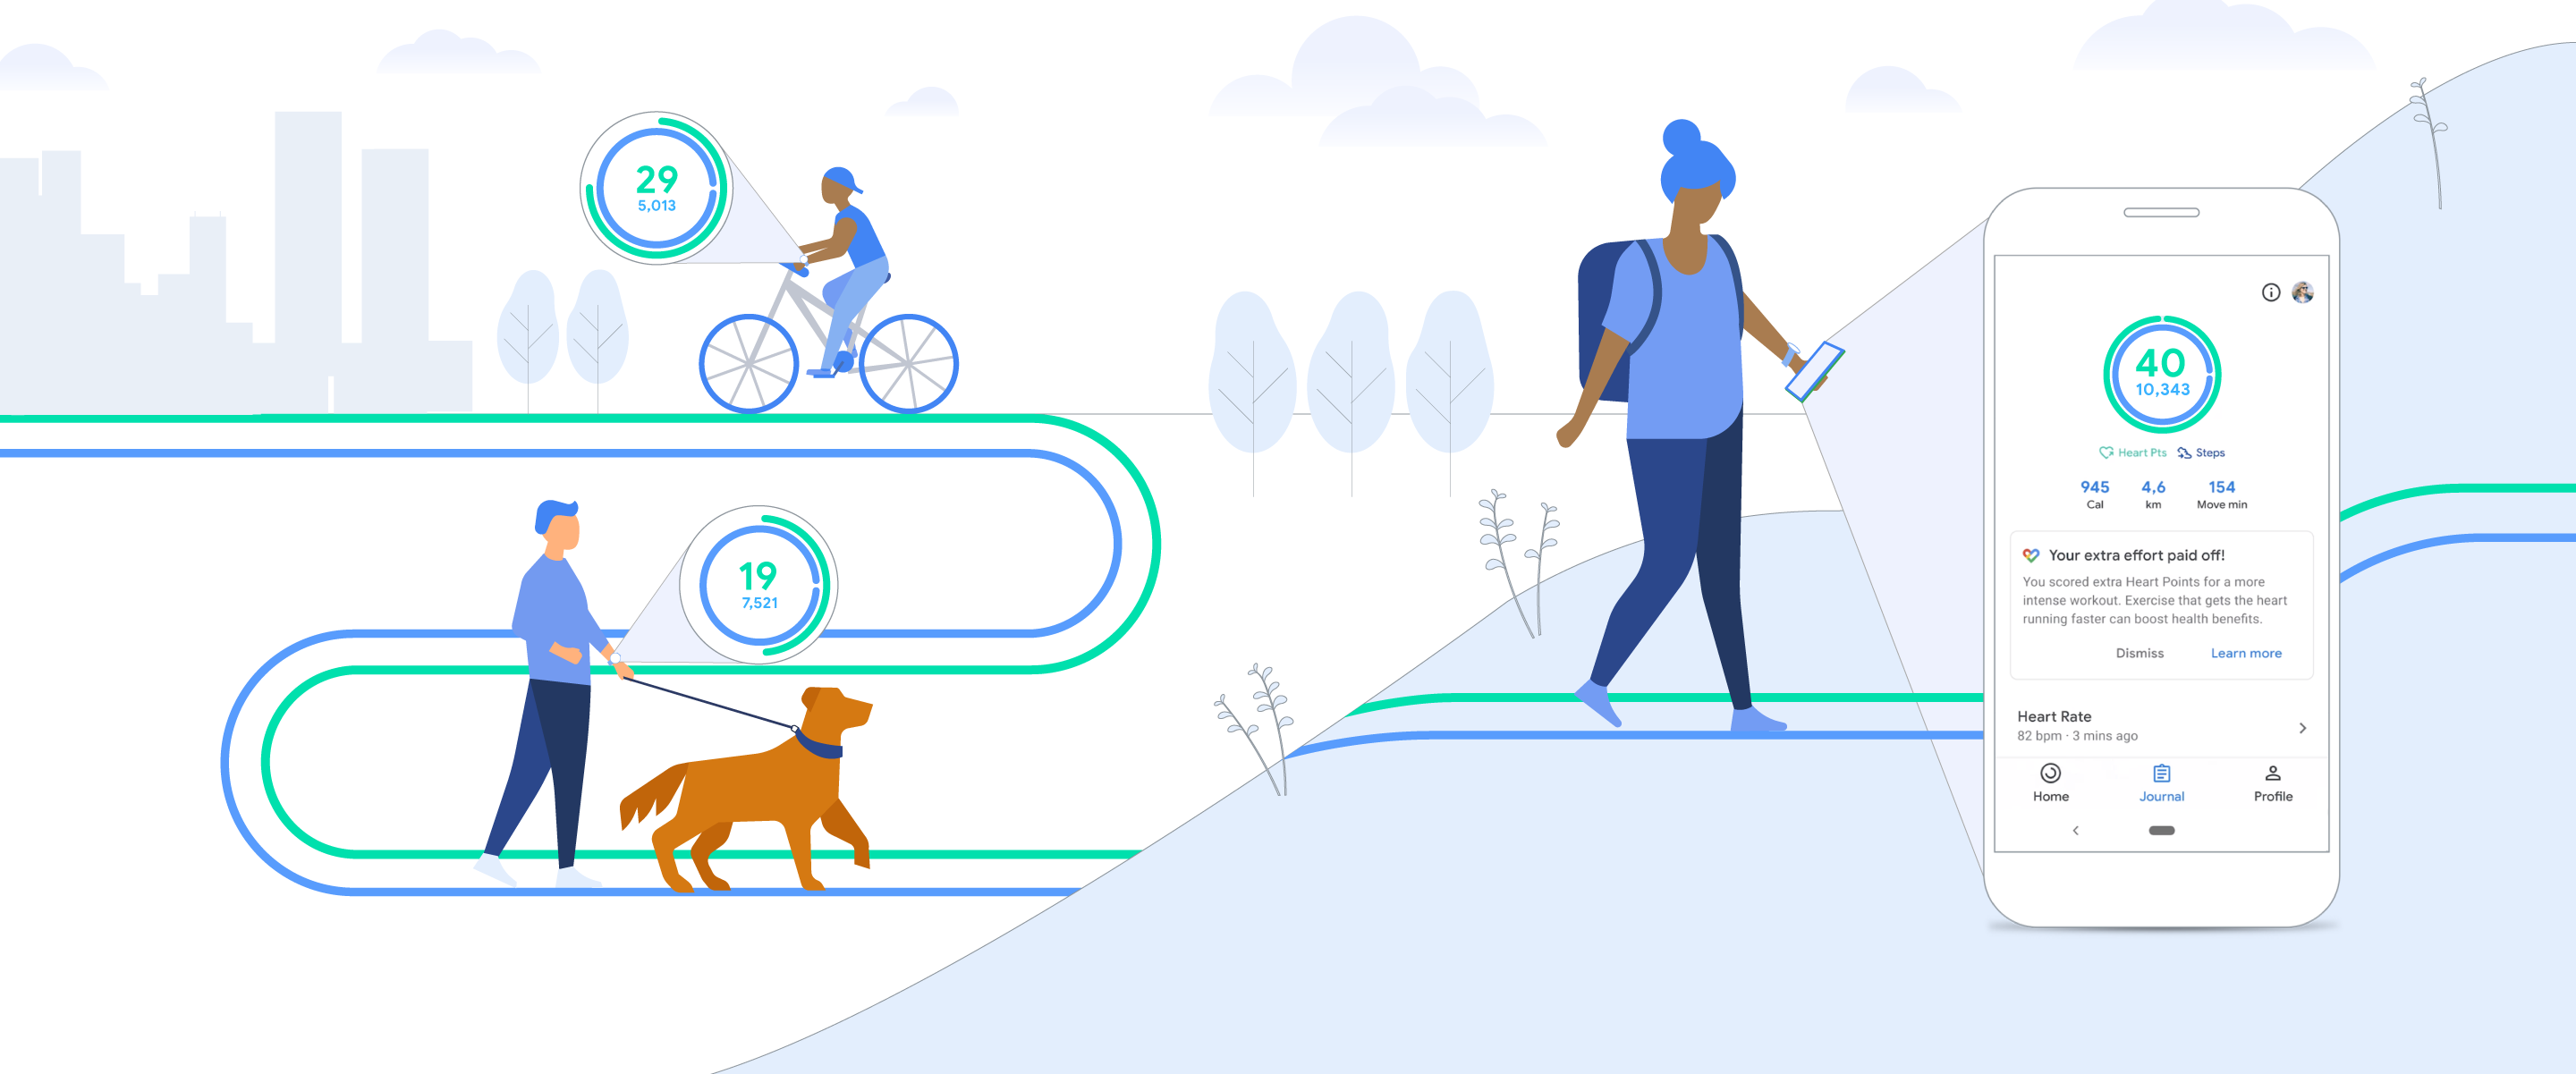 Tackle your health goals in 2021 with Google Fit